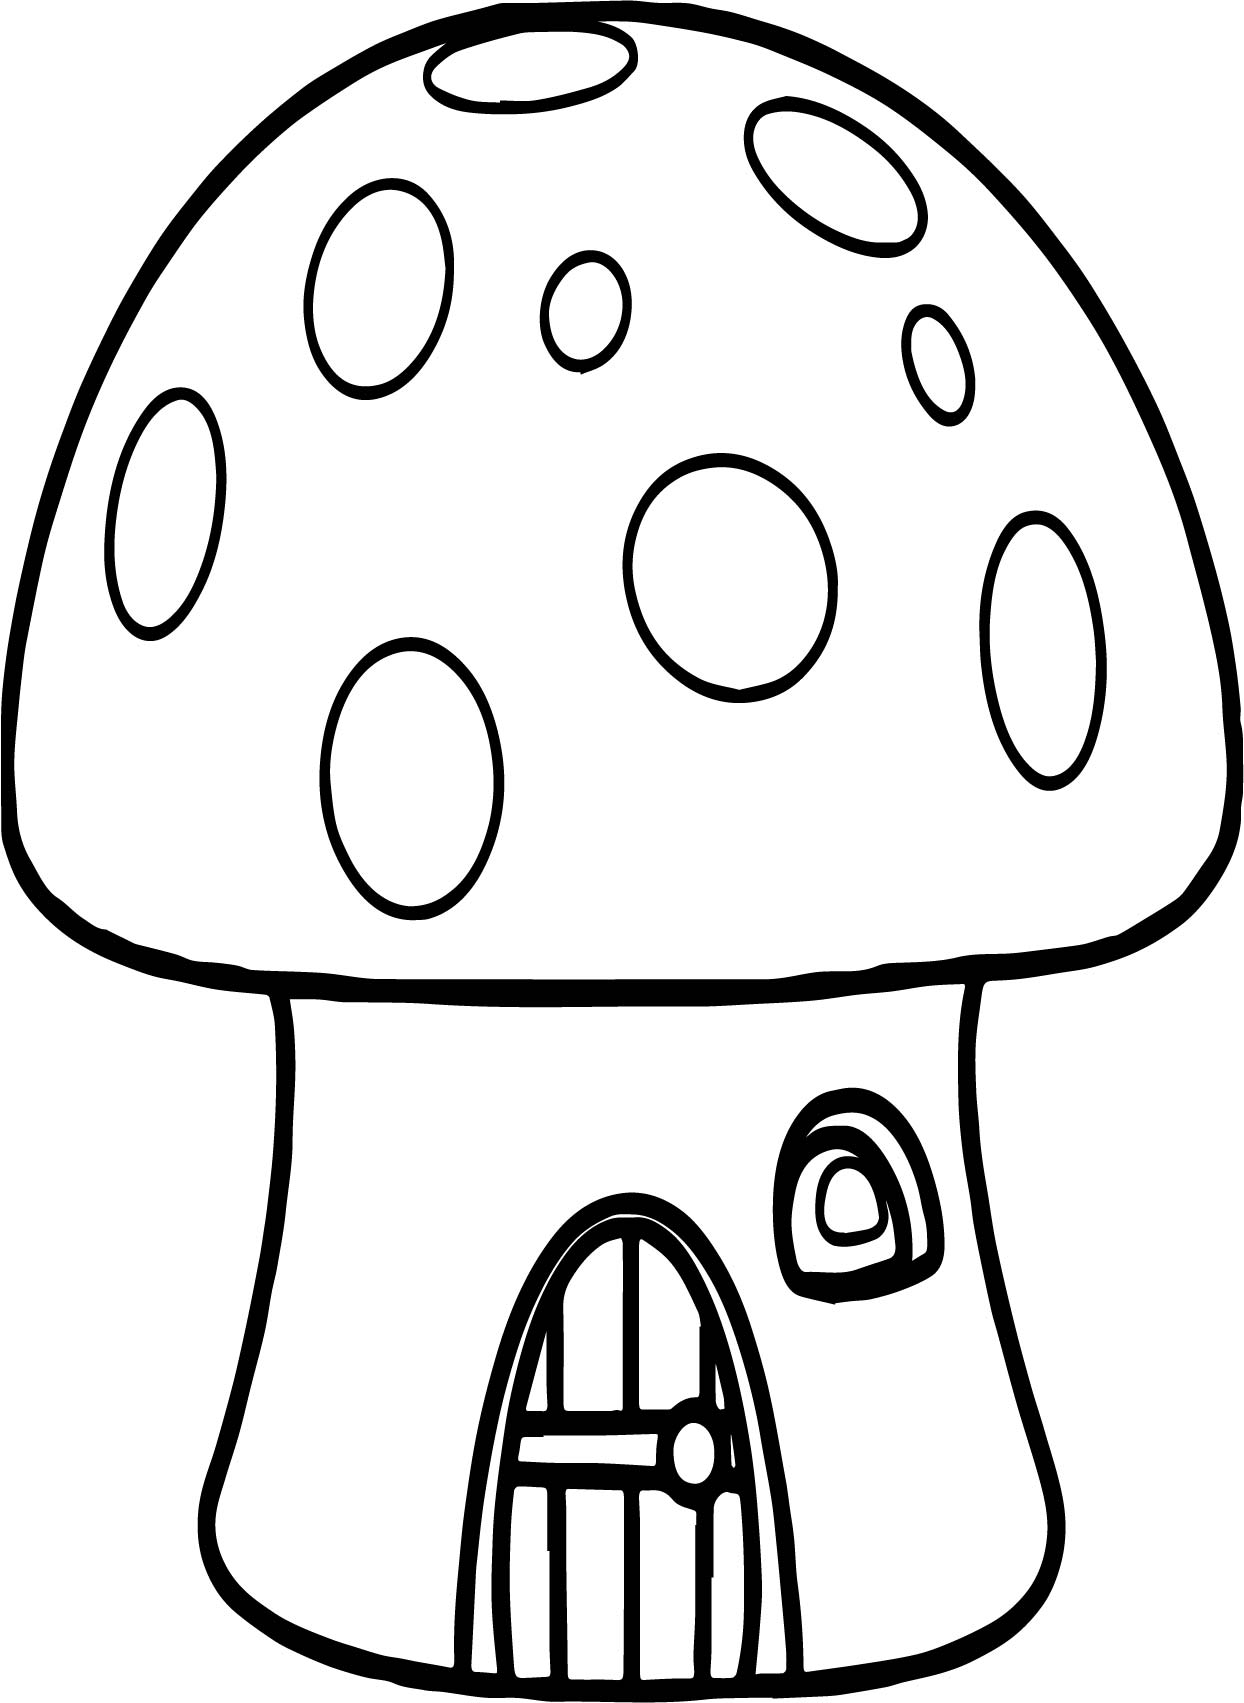 1244x1703 Mushroom House Coloring Page Mushroom Coloring Pages For Adults